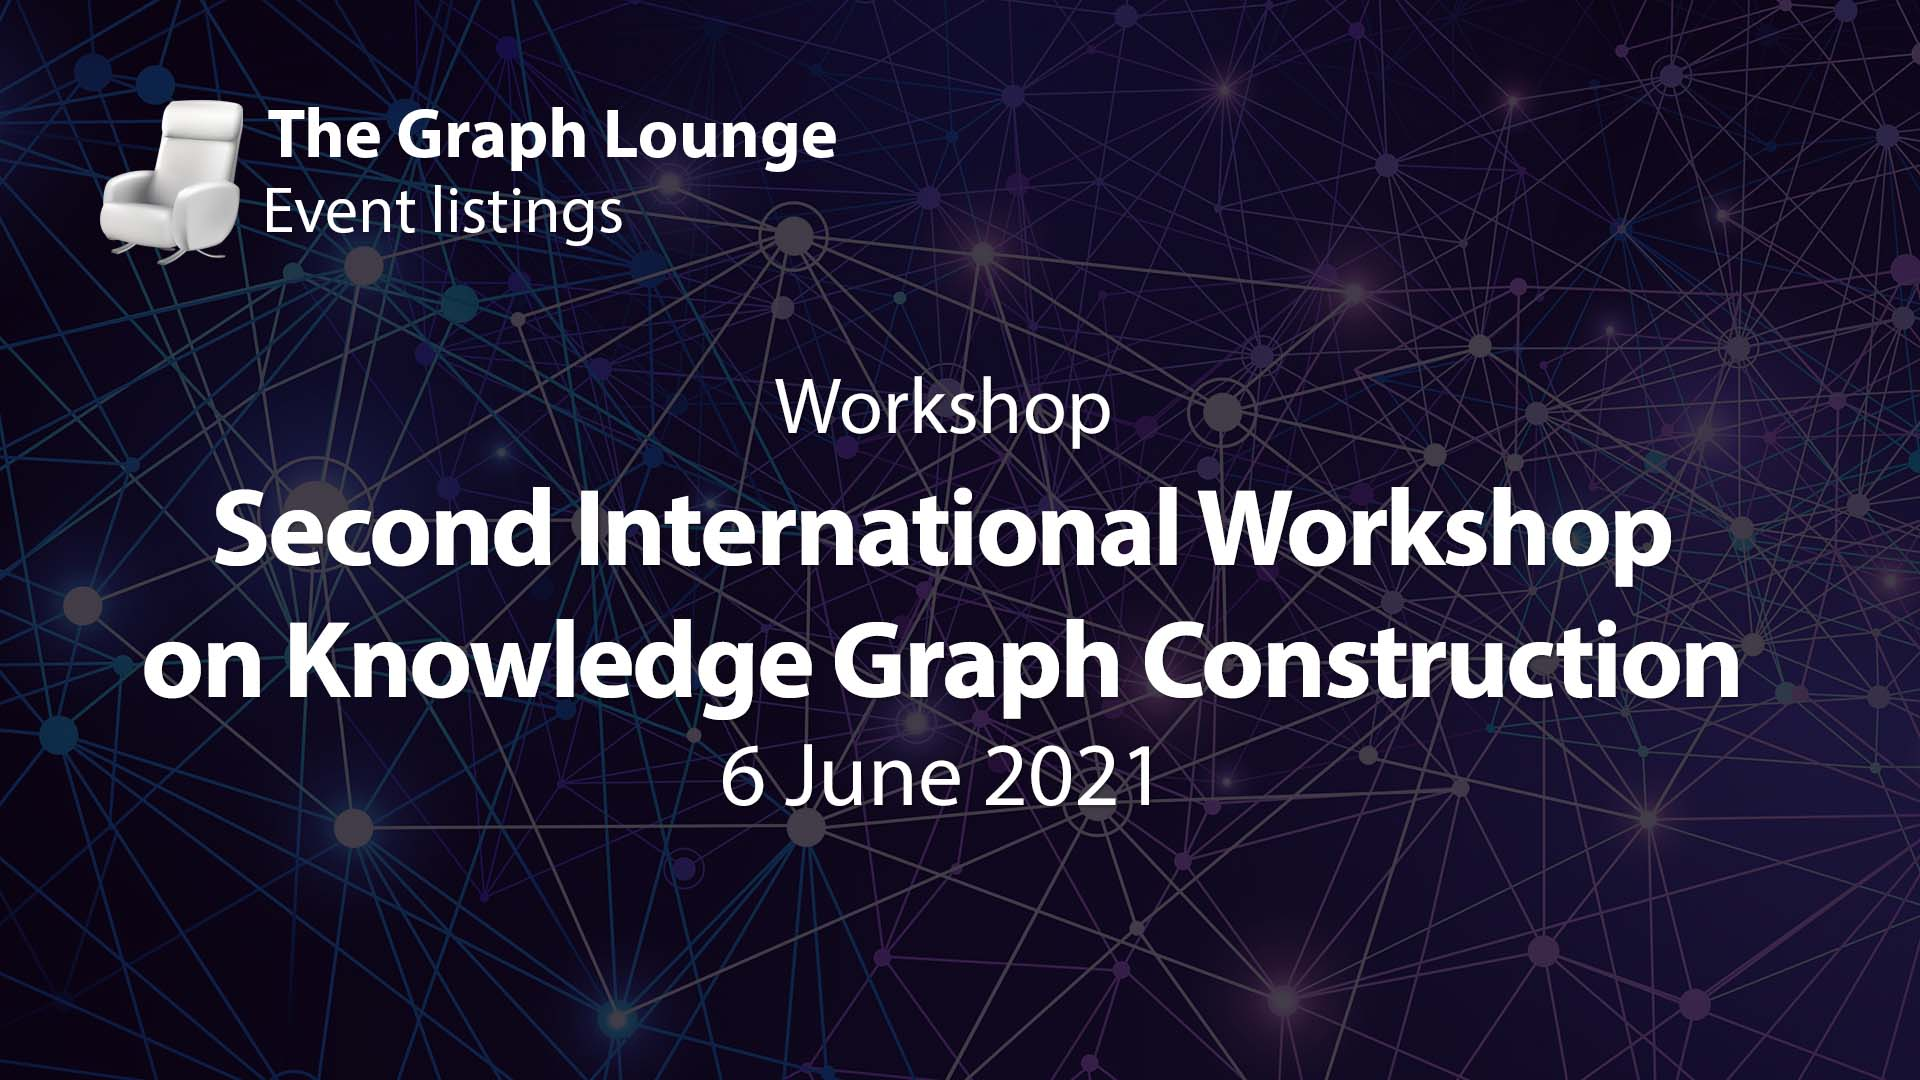 2nd International Workshop on Knowledge Graph Construction